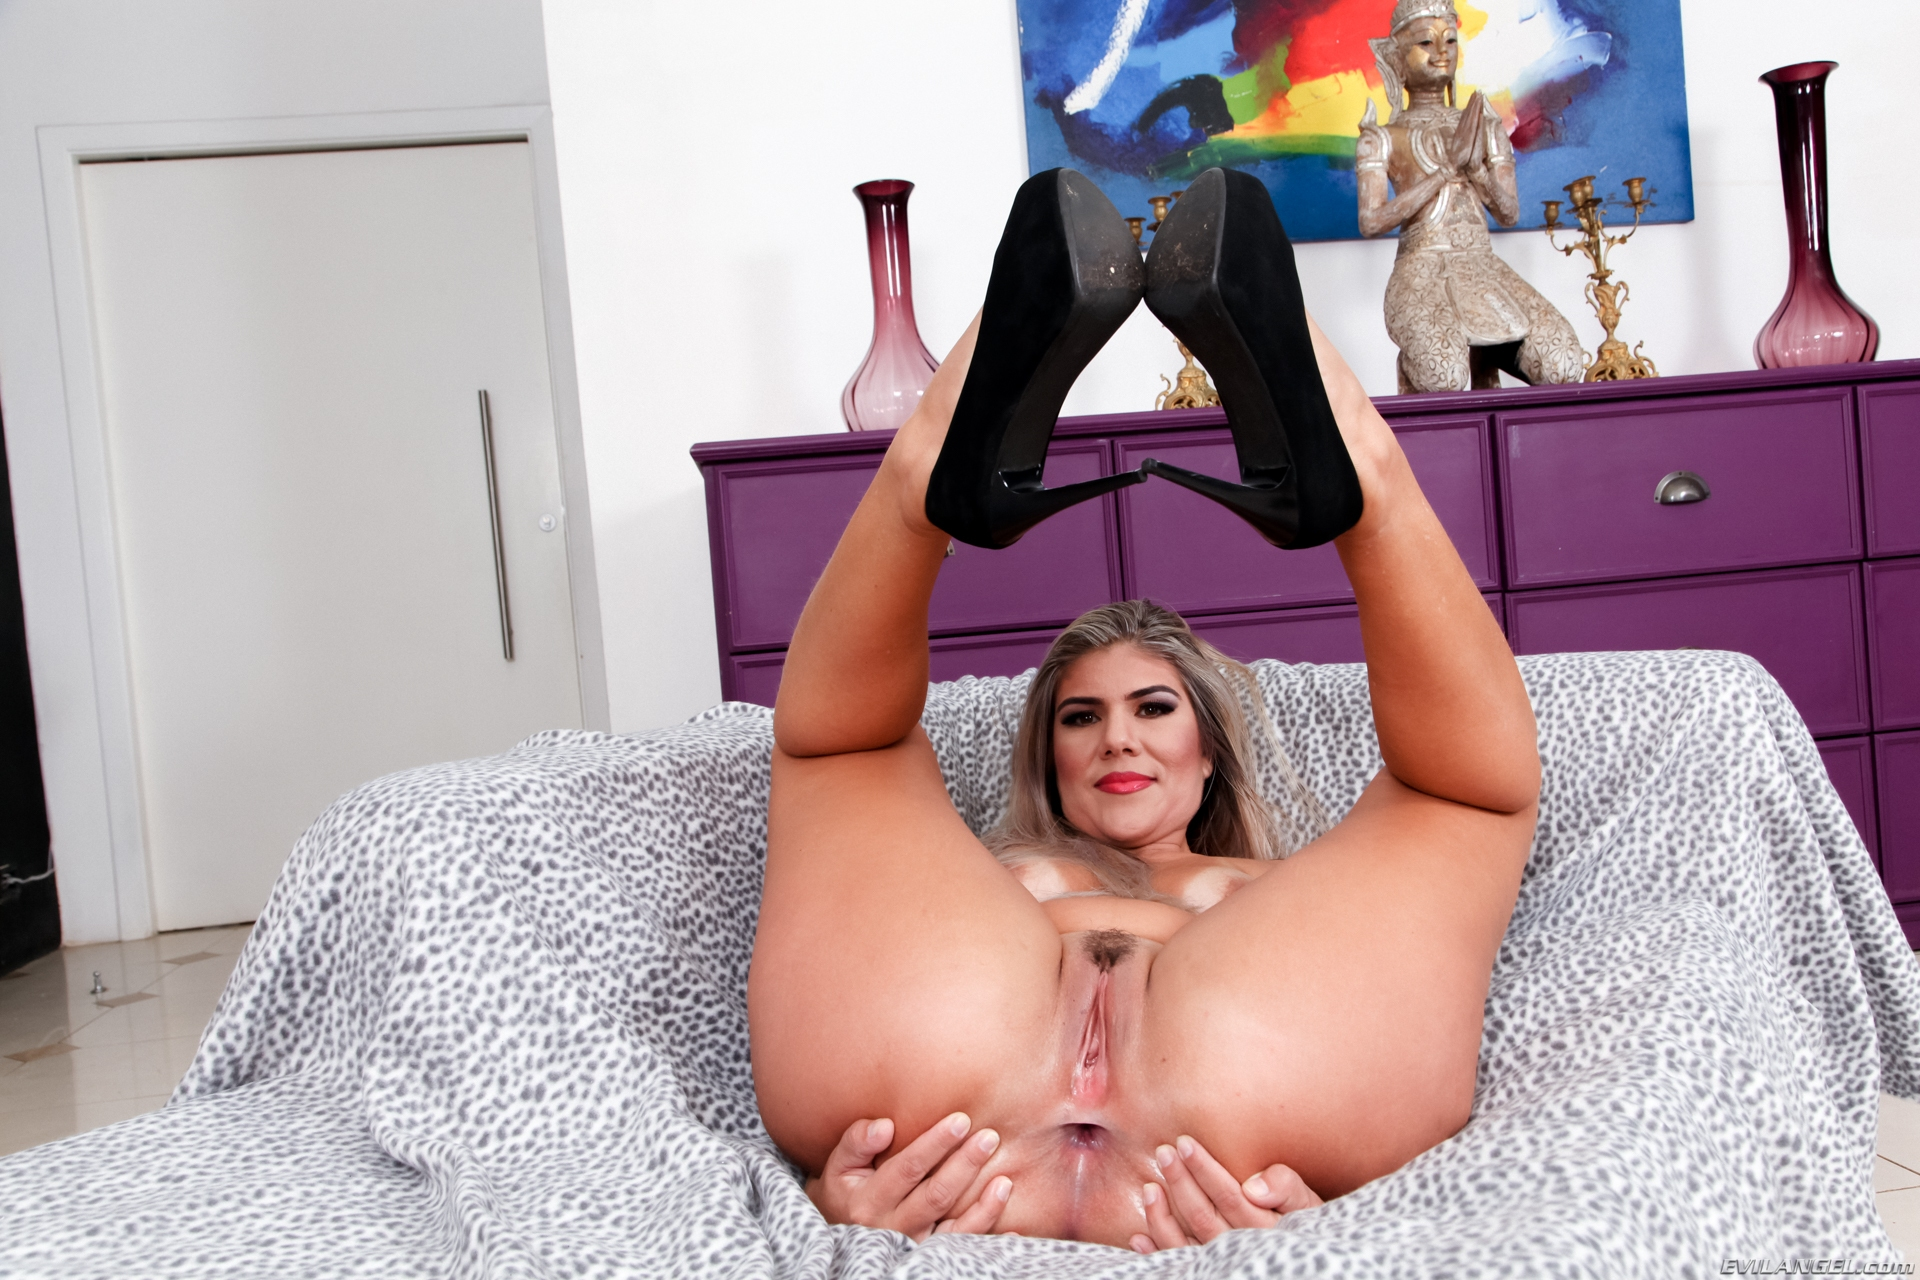 sorry, sitting on dildo anal there are